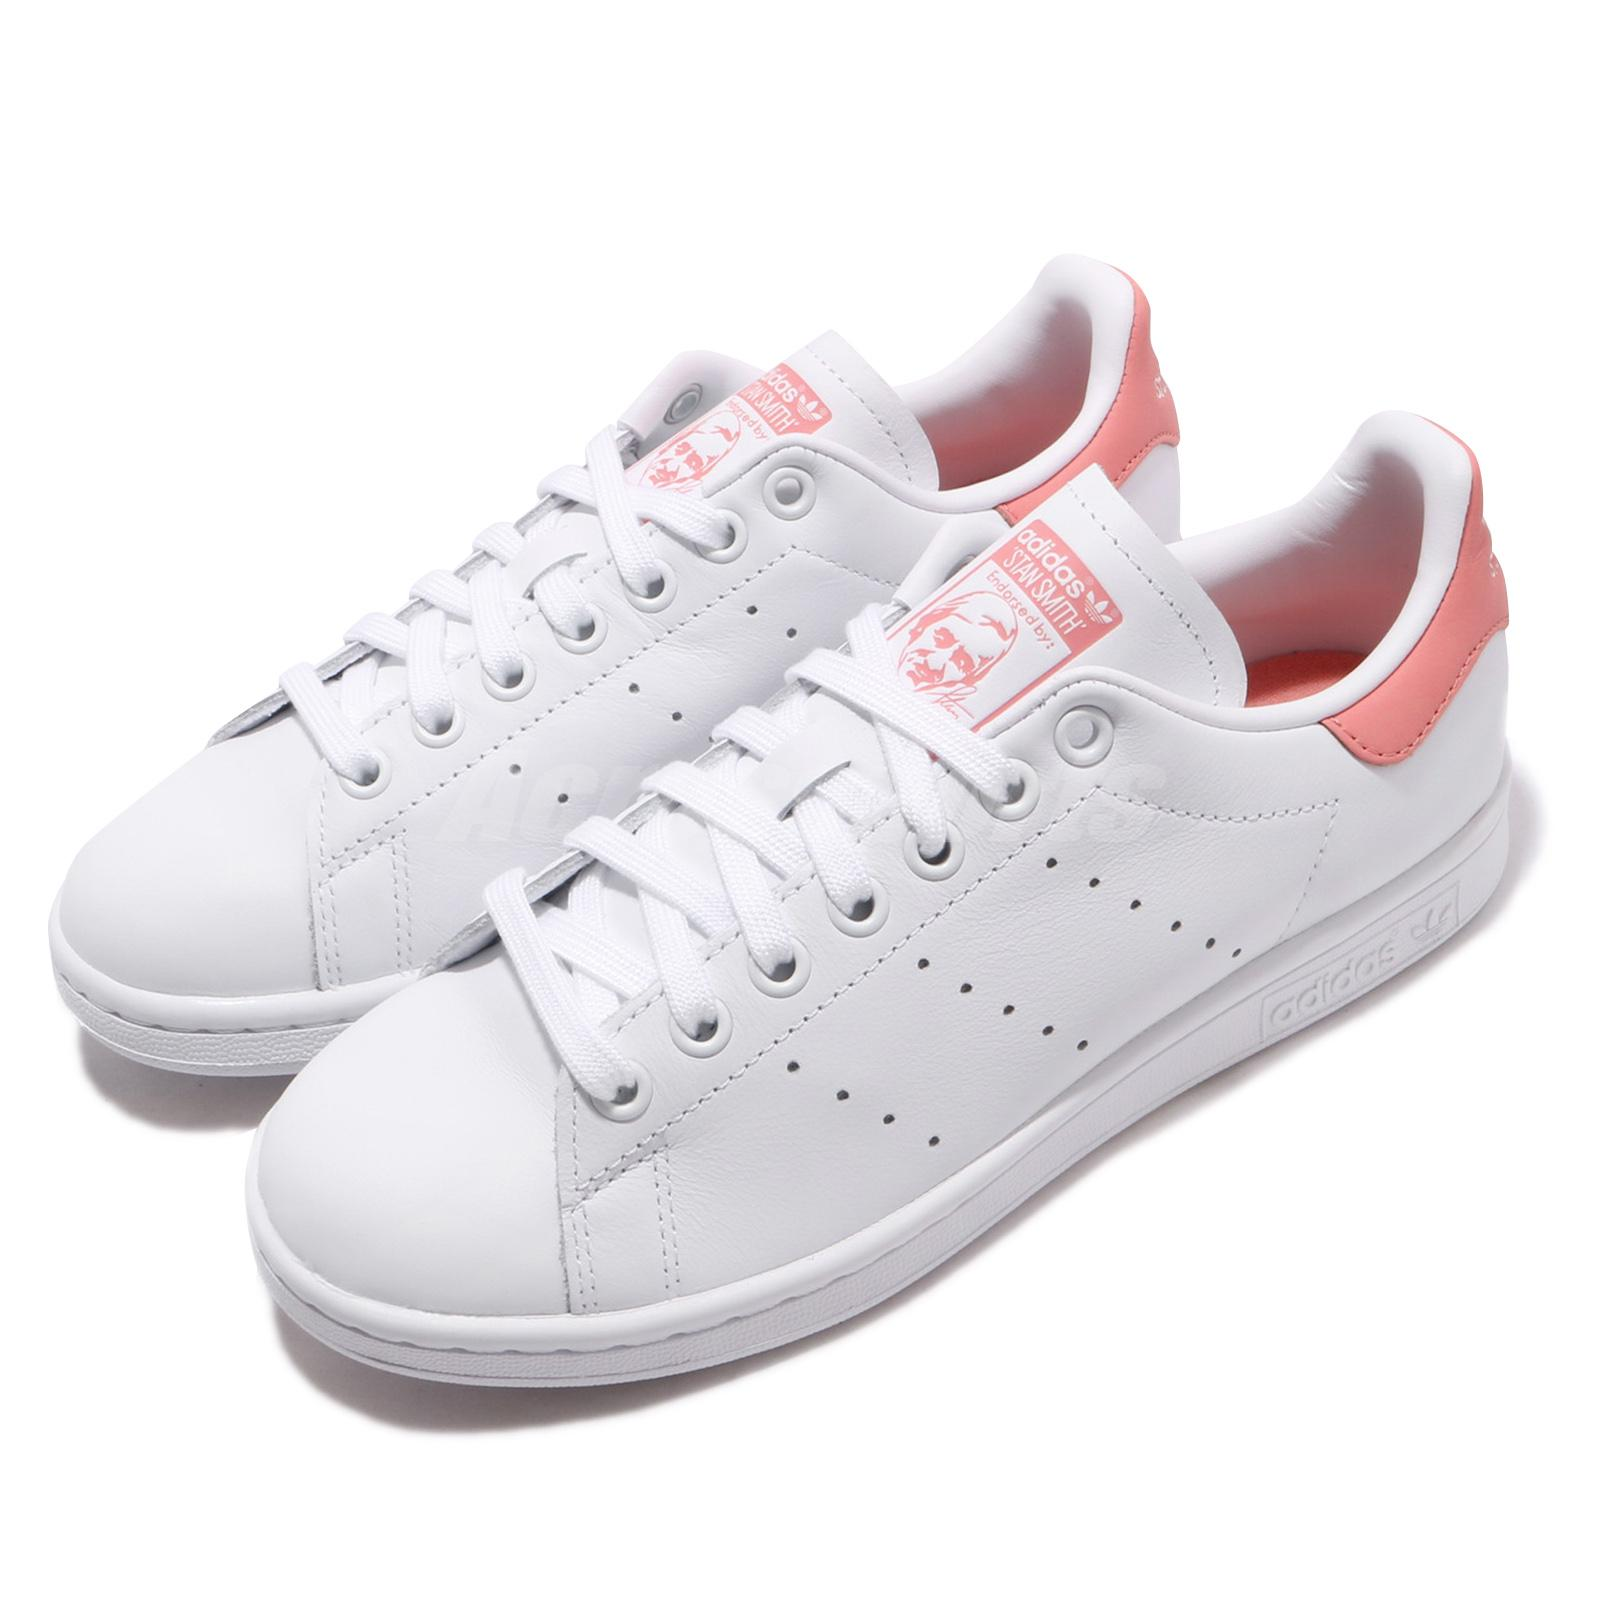 official photos 1cdf0 66c24 Details about adidas Originals Stan Smith W Tactile Rose Pink White Women  Casual Shoes EF9319